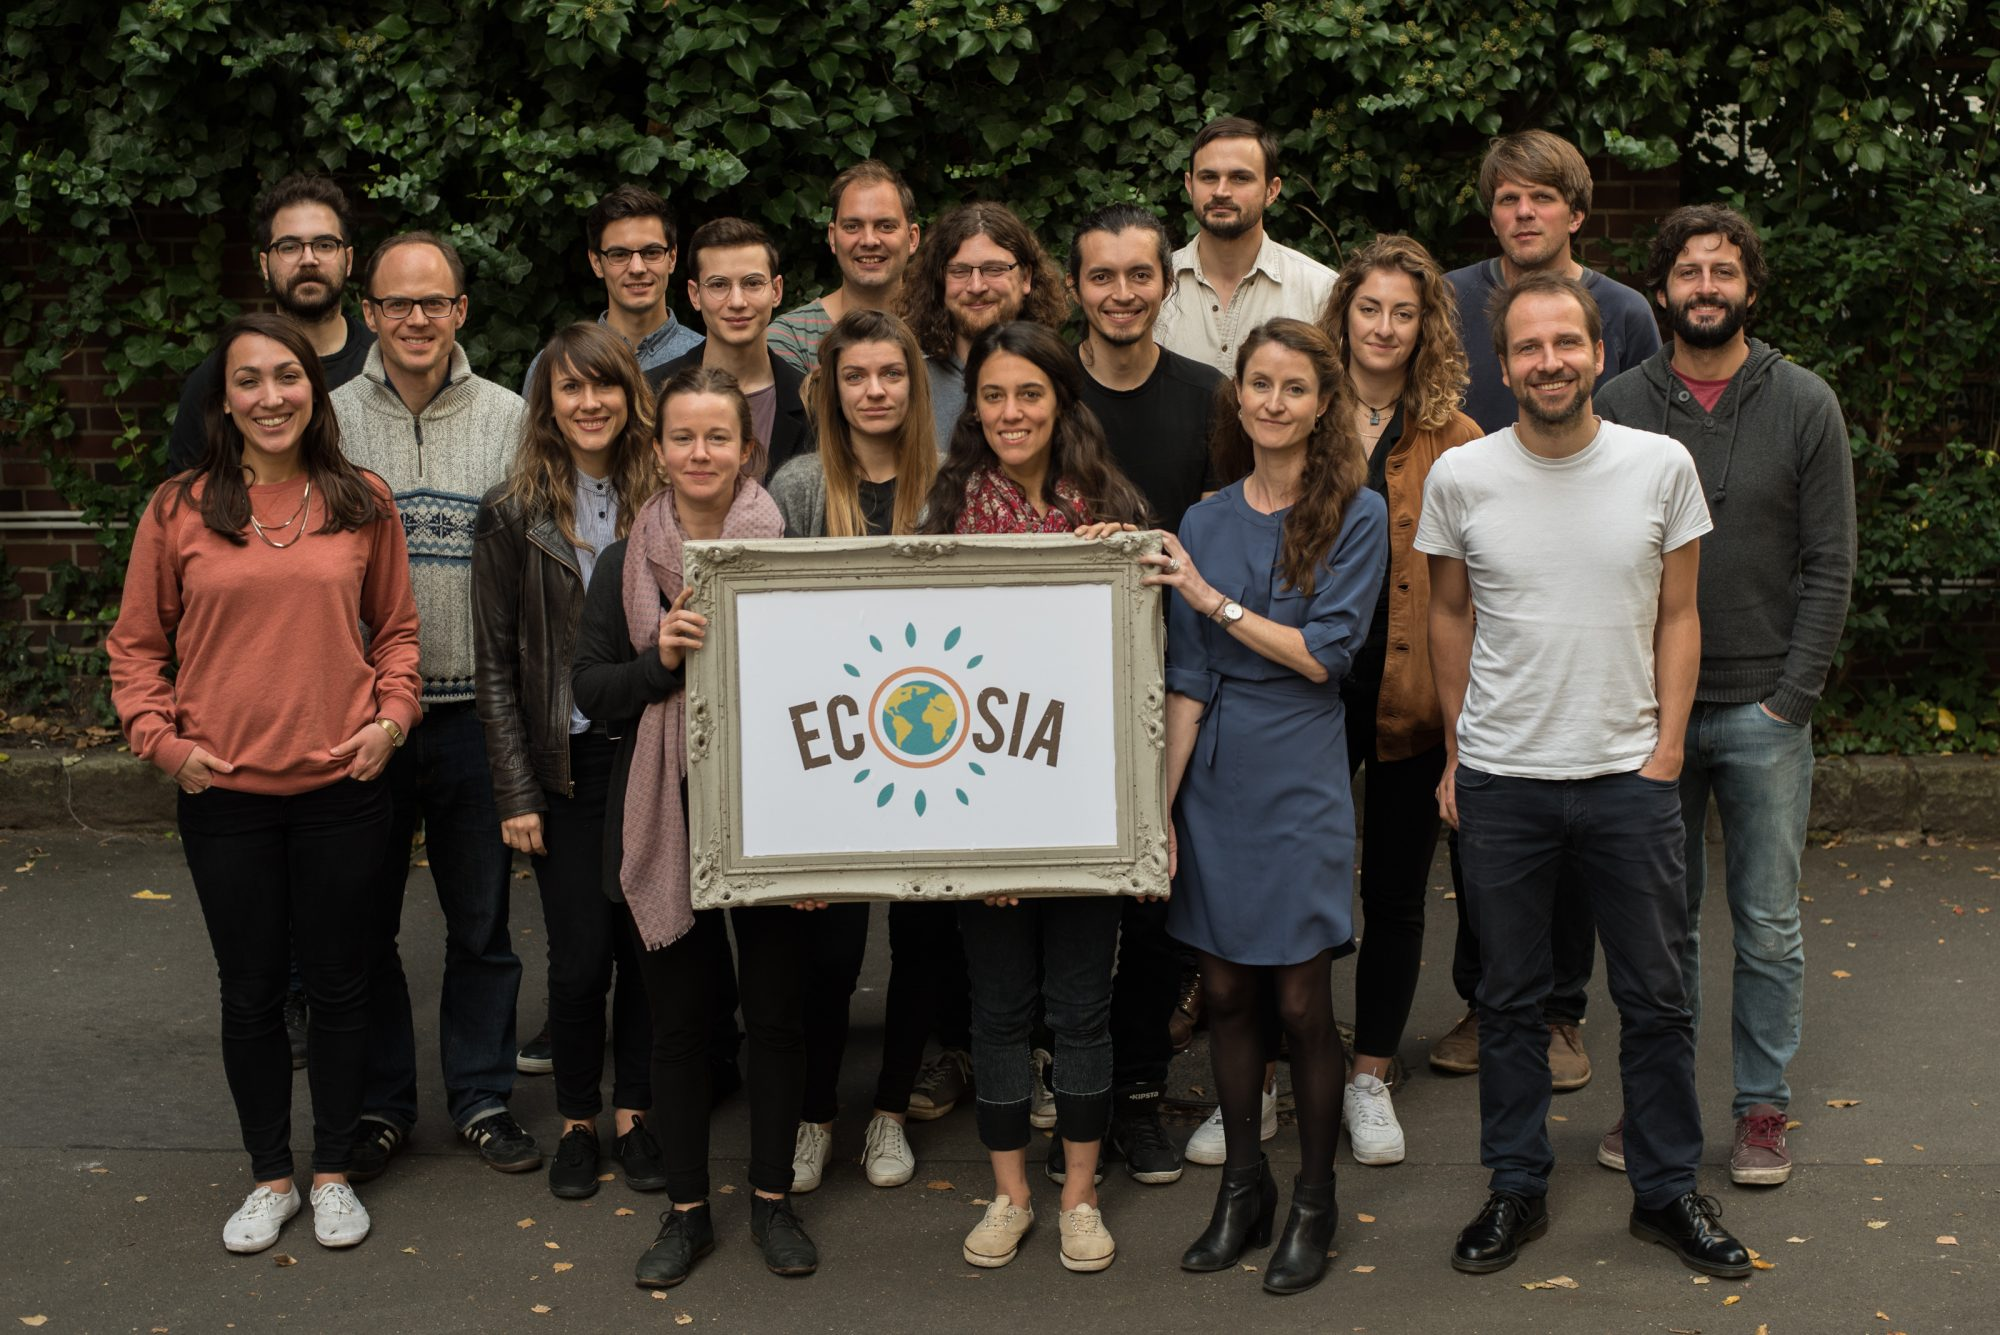 A group photo of 18 smiling and happy people - employees at the company Ecosia - the front three of whom are holding a framed Ecosia company logo.